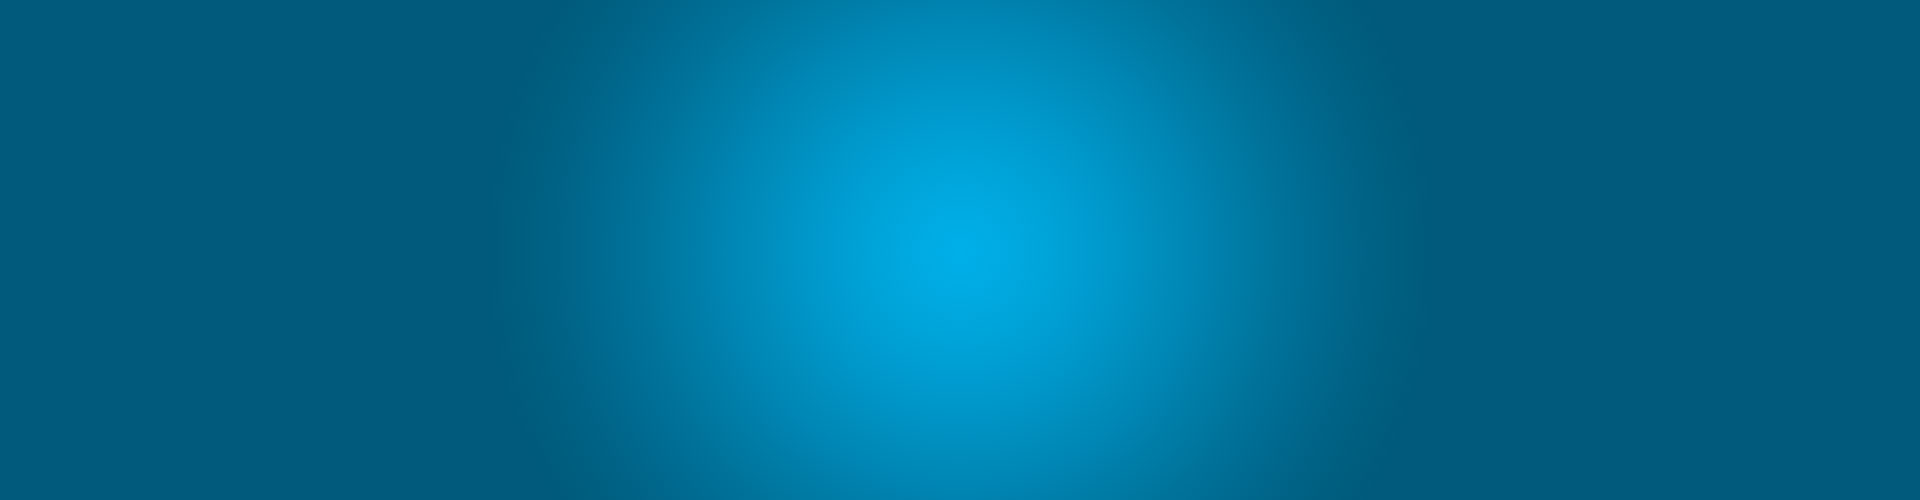 blue-background_slider1